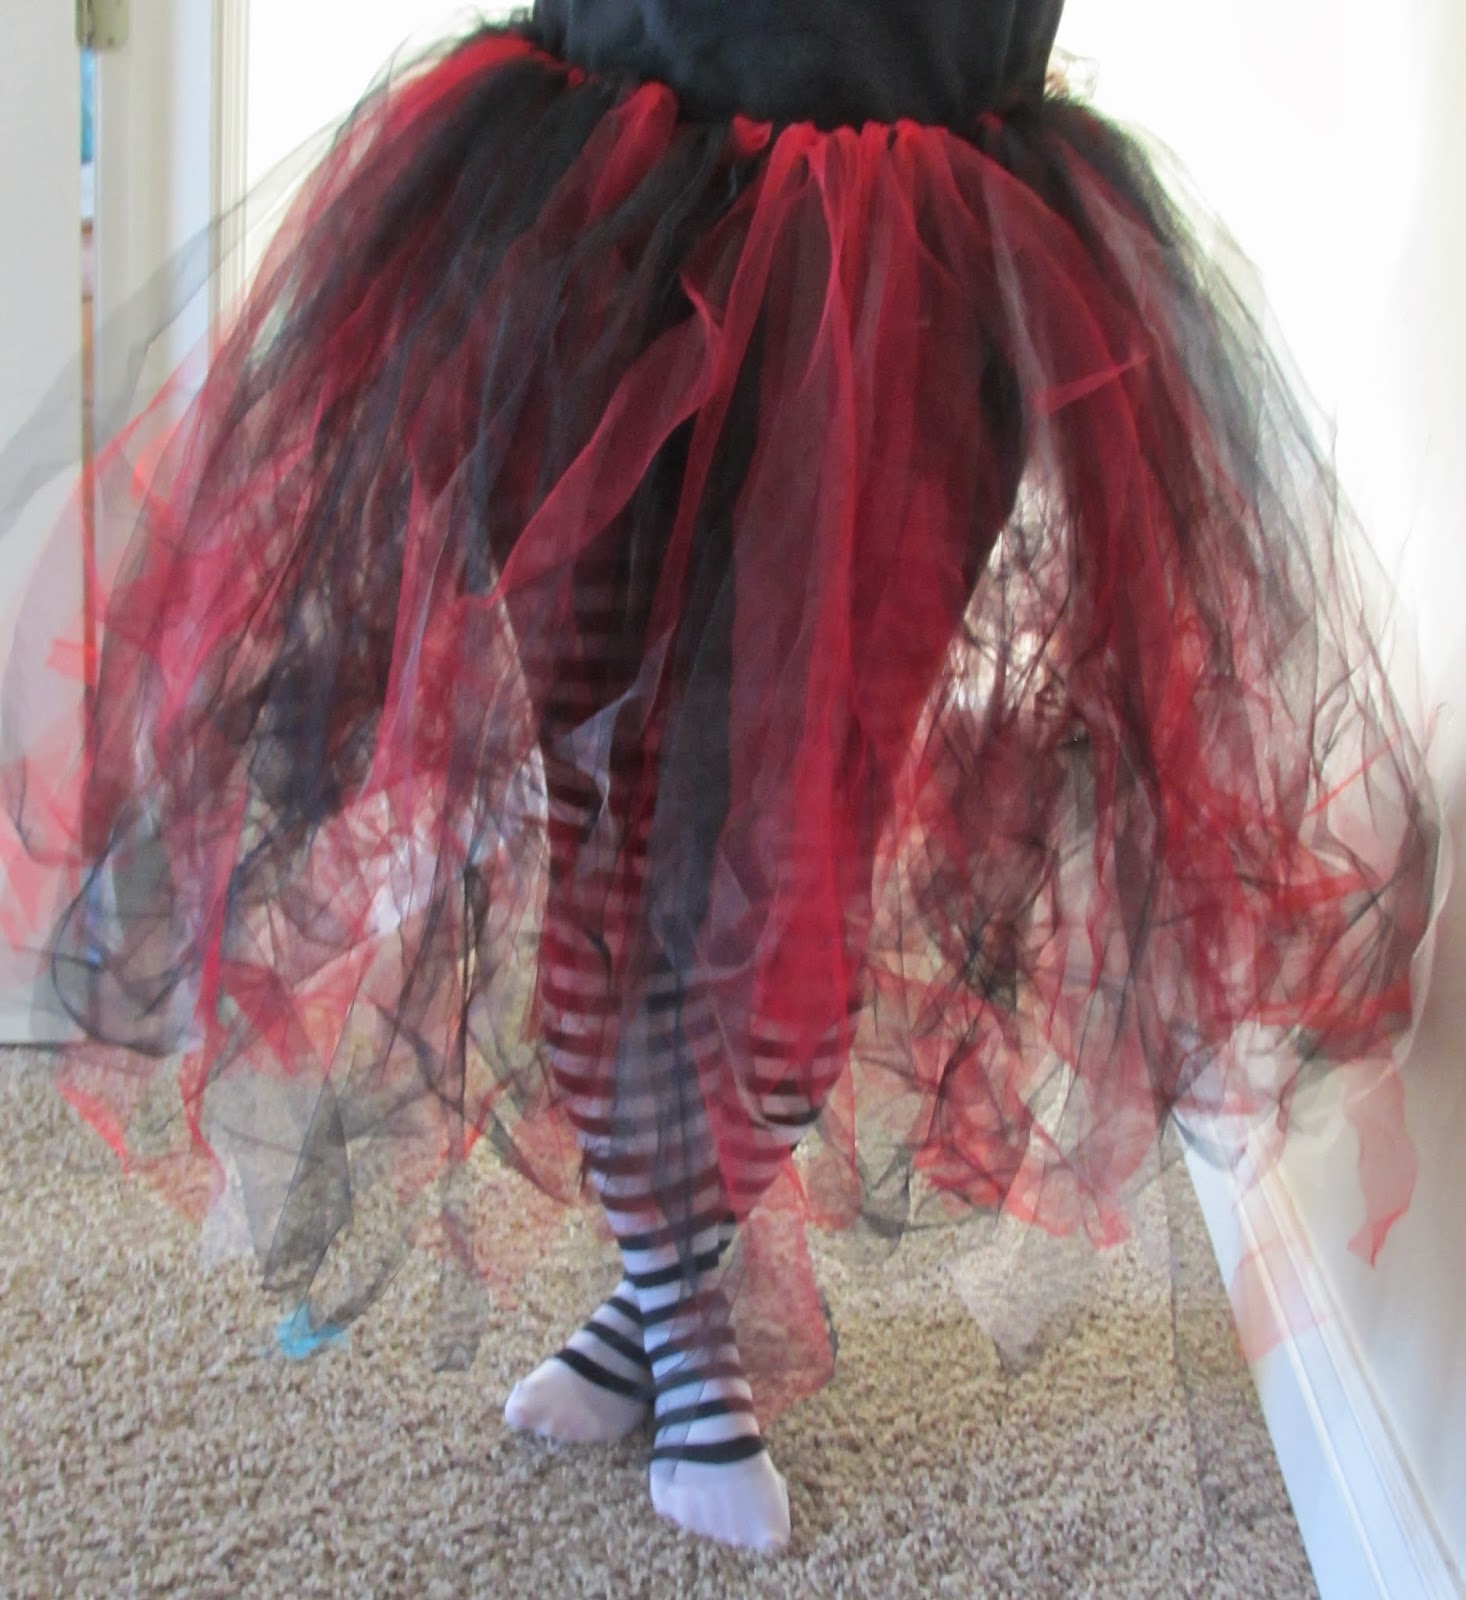 Queen Of Hearts Costume Diy Tutu Hot Glue & Sparkle...